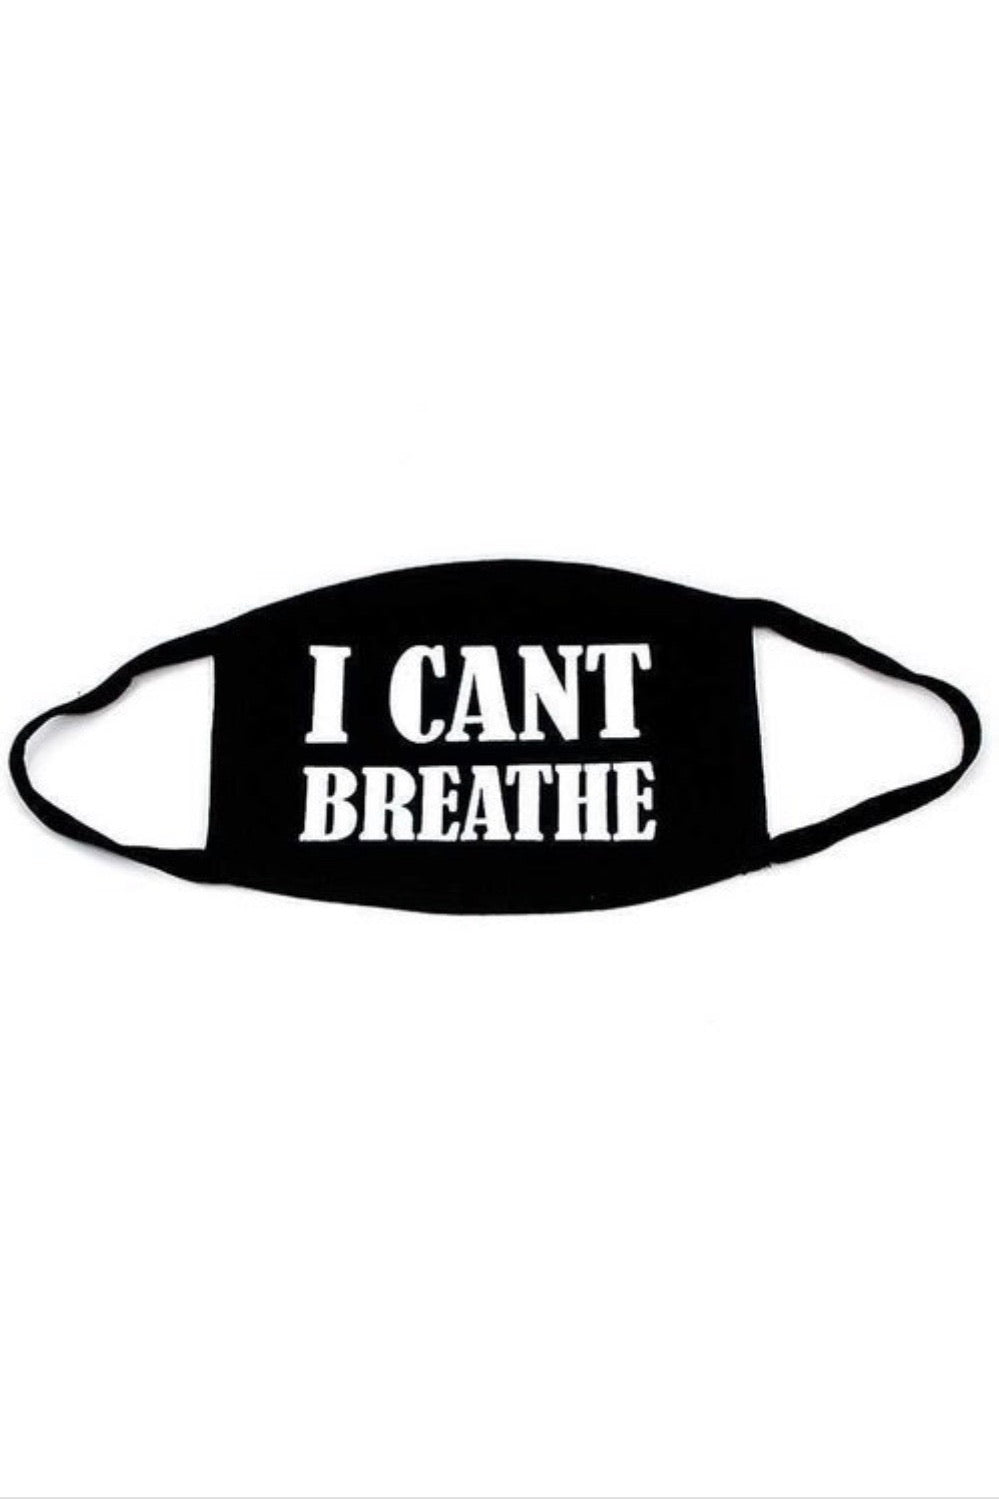 I cca this breathe mask